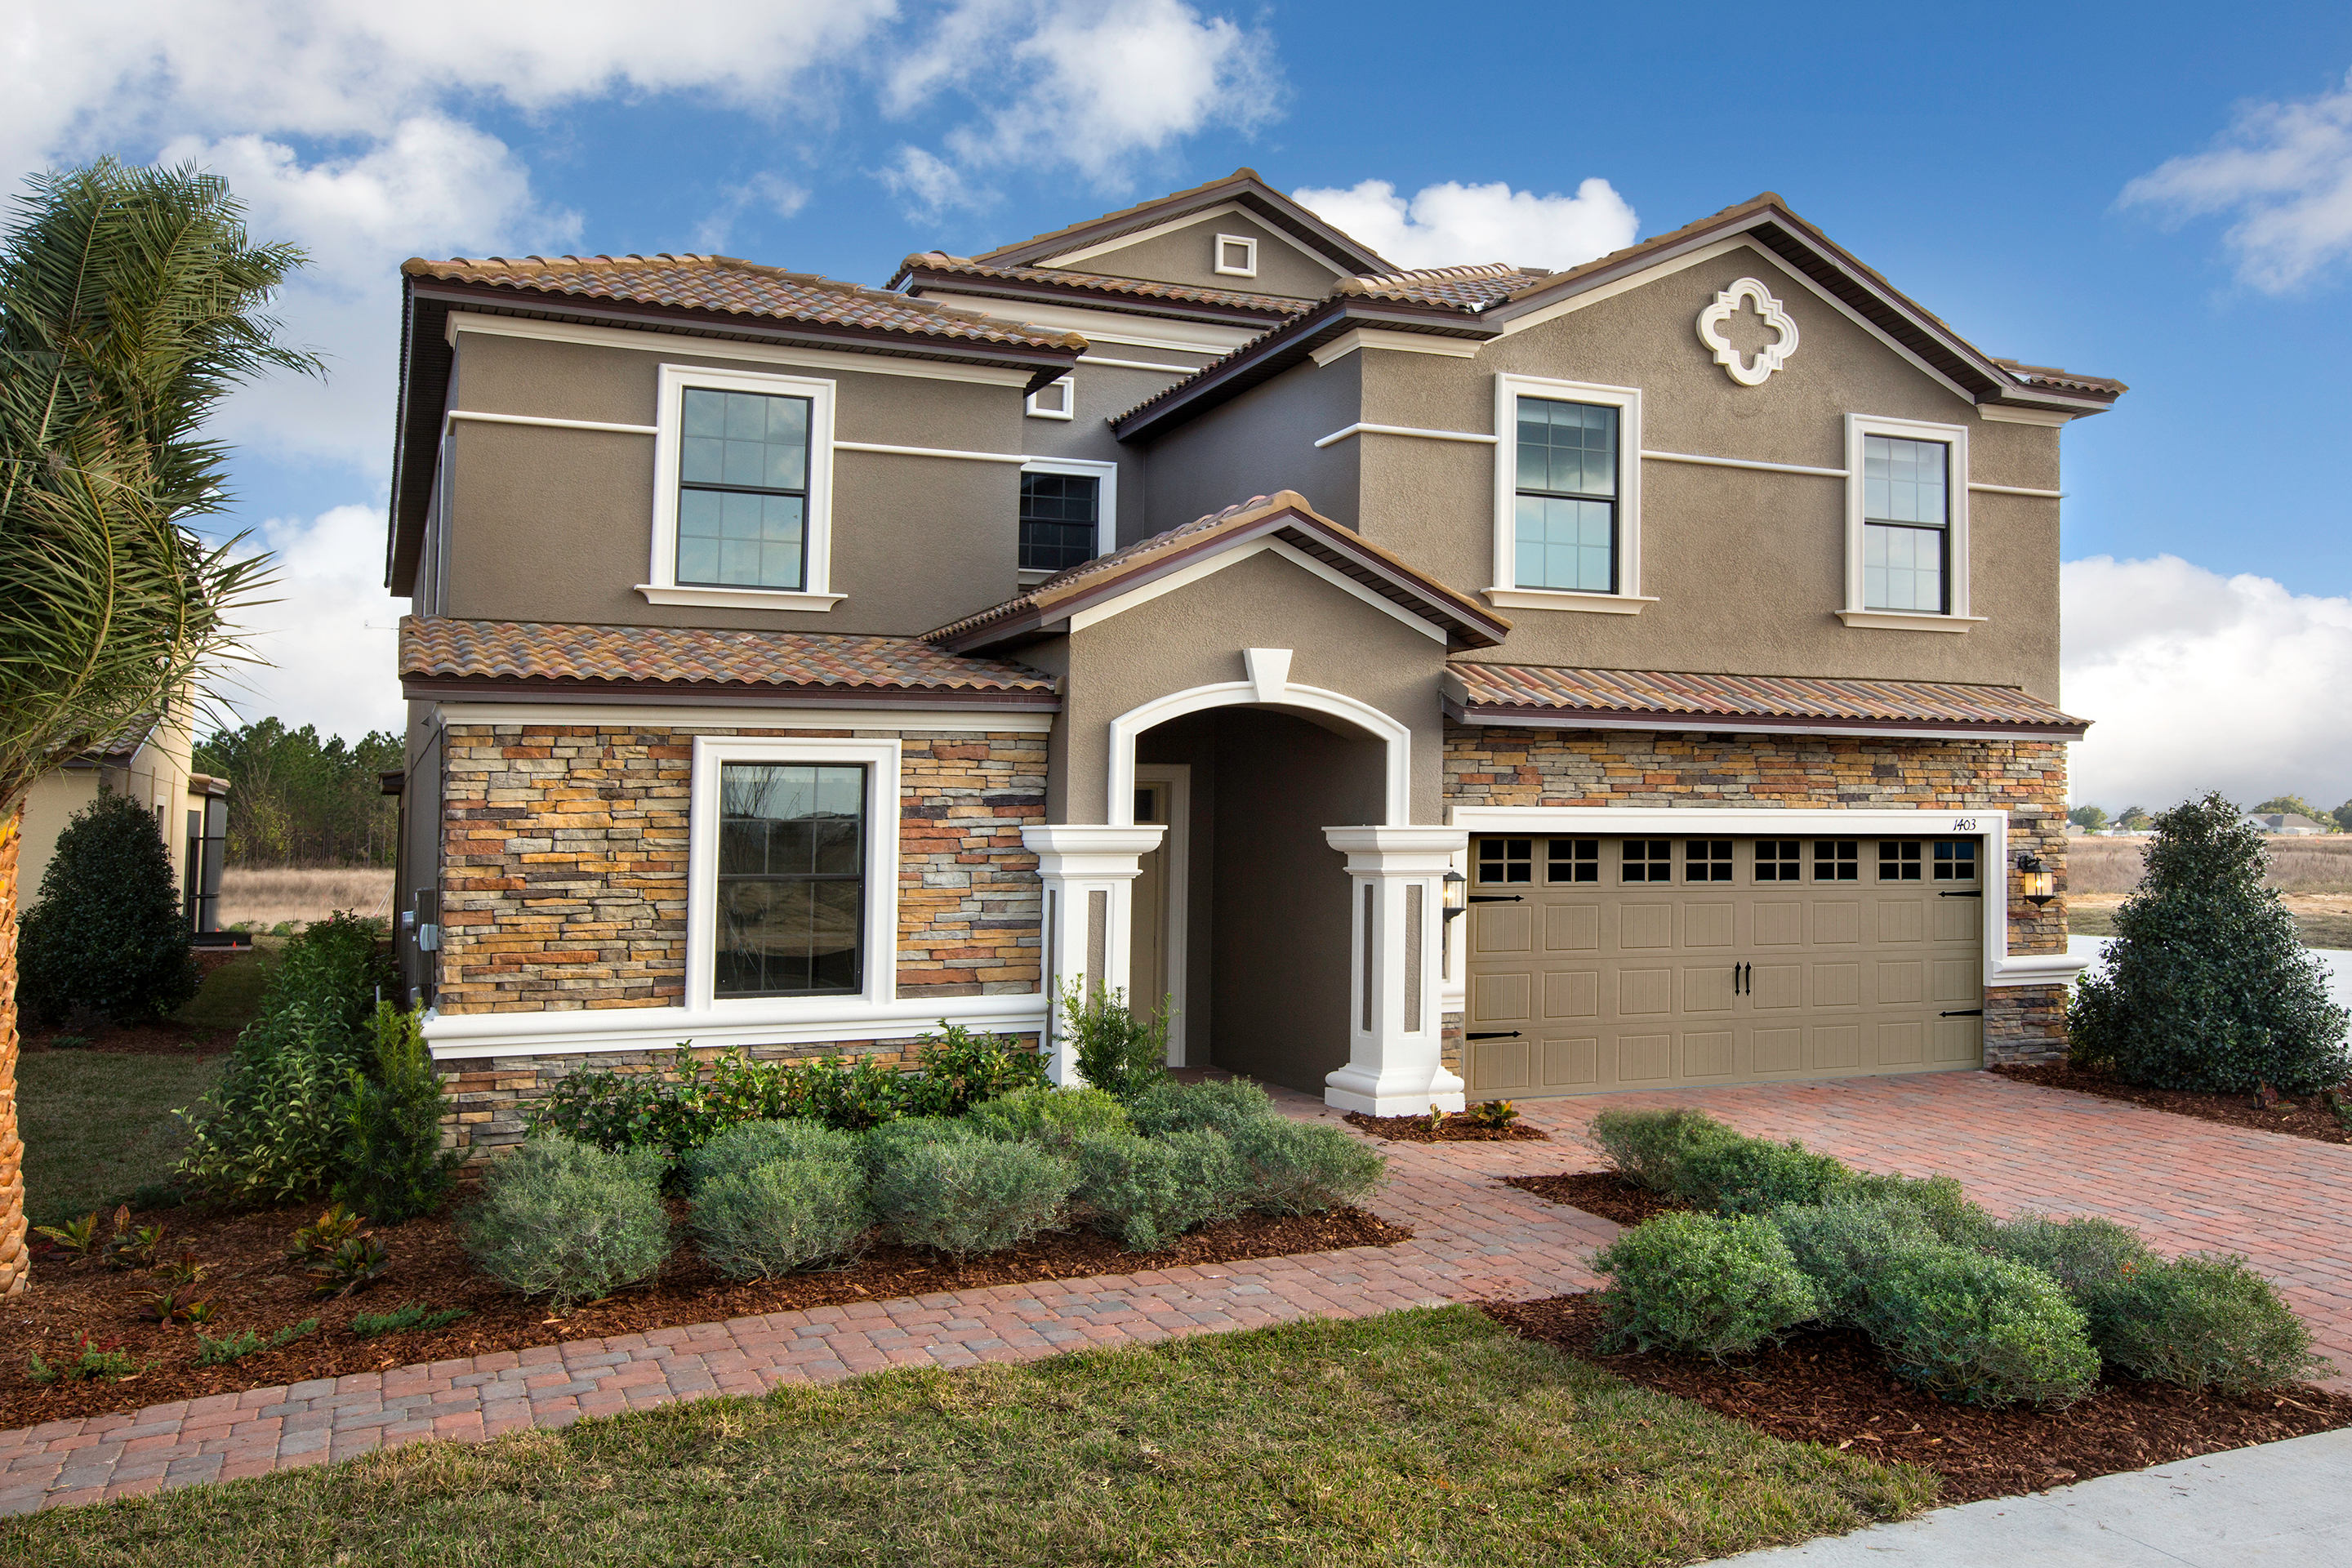 Florida homes association in kissimmee fl 34741 for House builders in florida